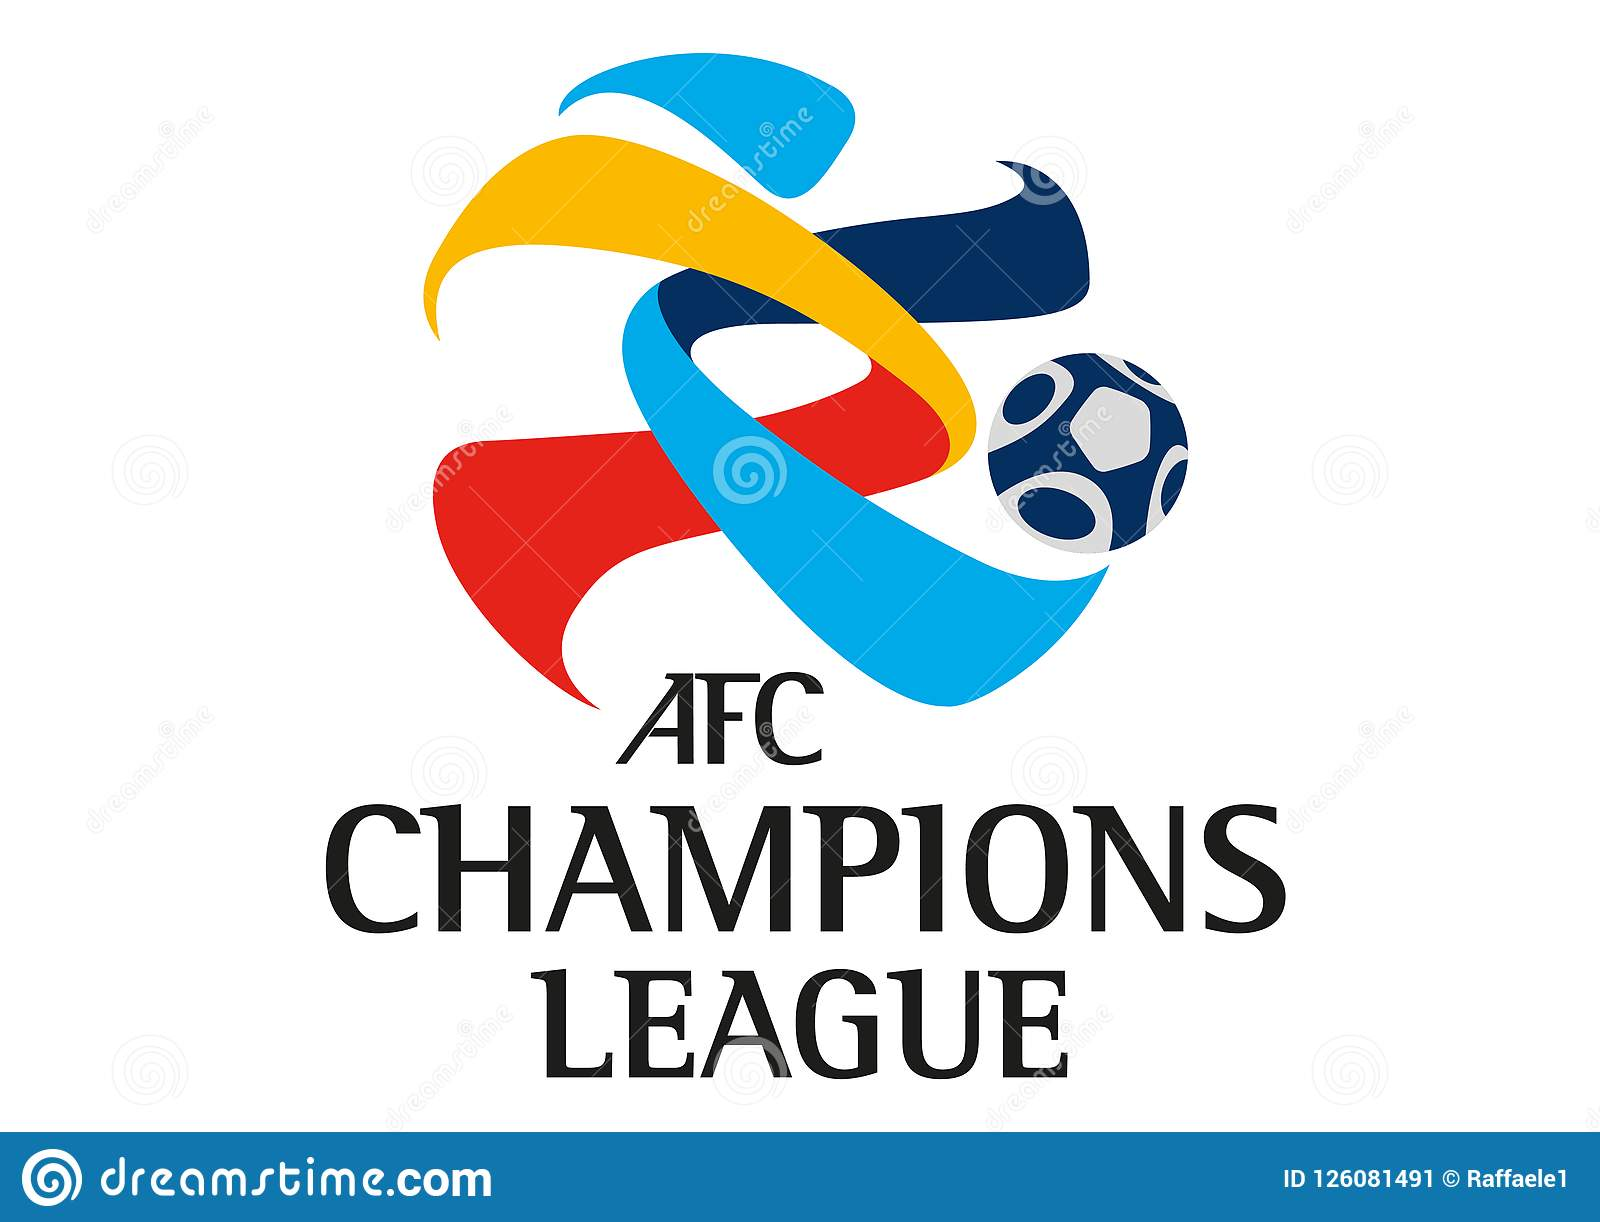 afc champions league logo editorial photo illustration of japanese 126081491 https www dreamstime com afc champions league logo afc champions league logo football asian vector format aviable ai image126081491